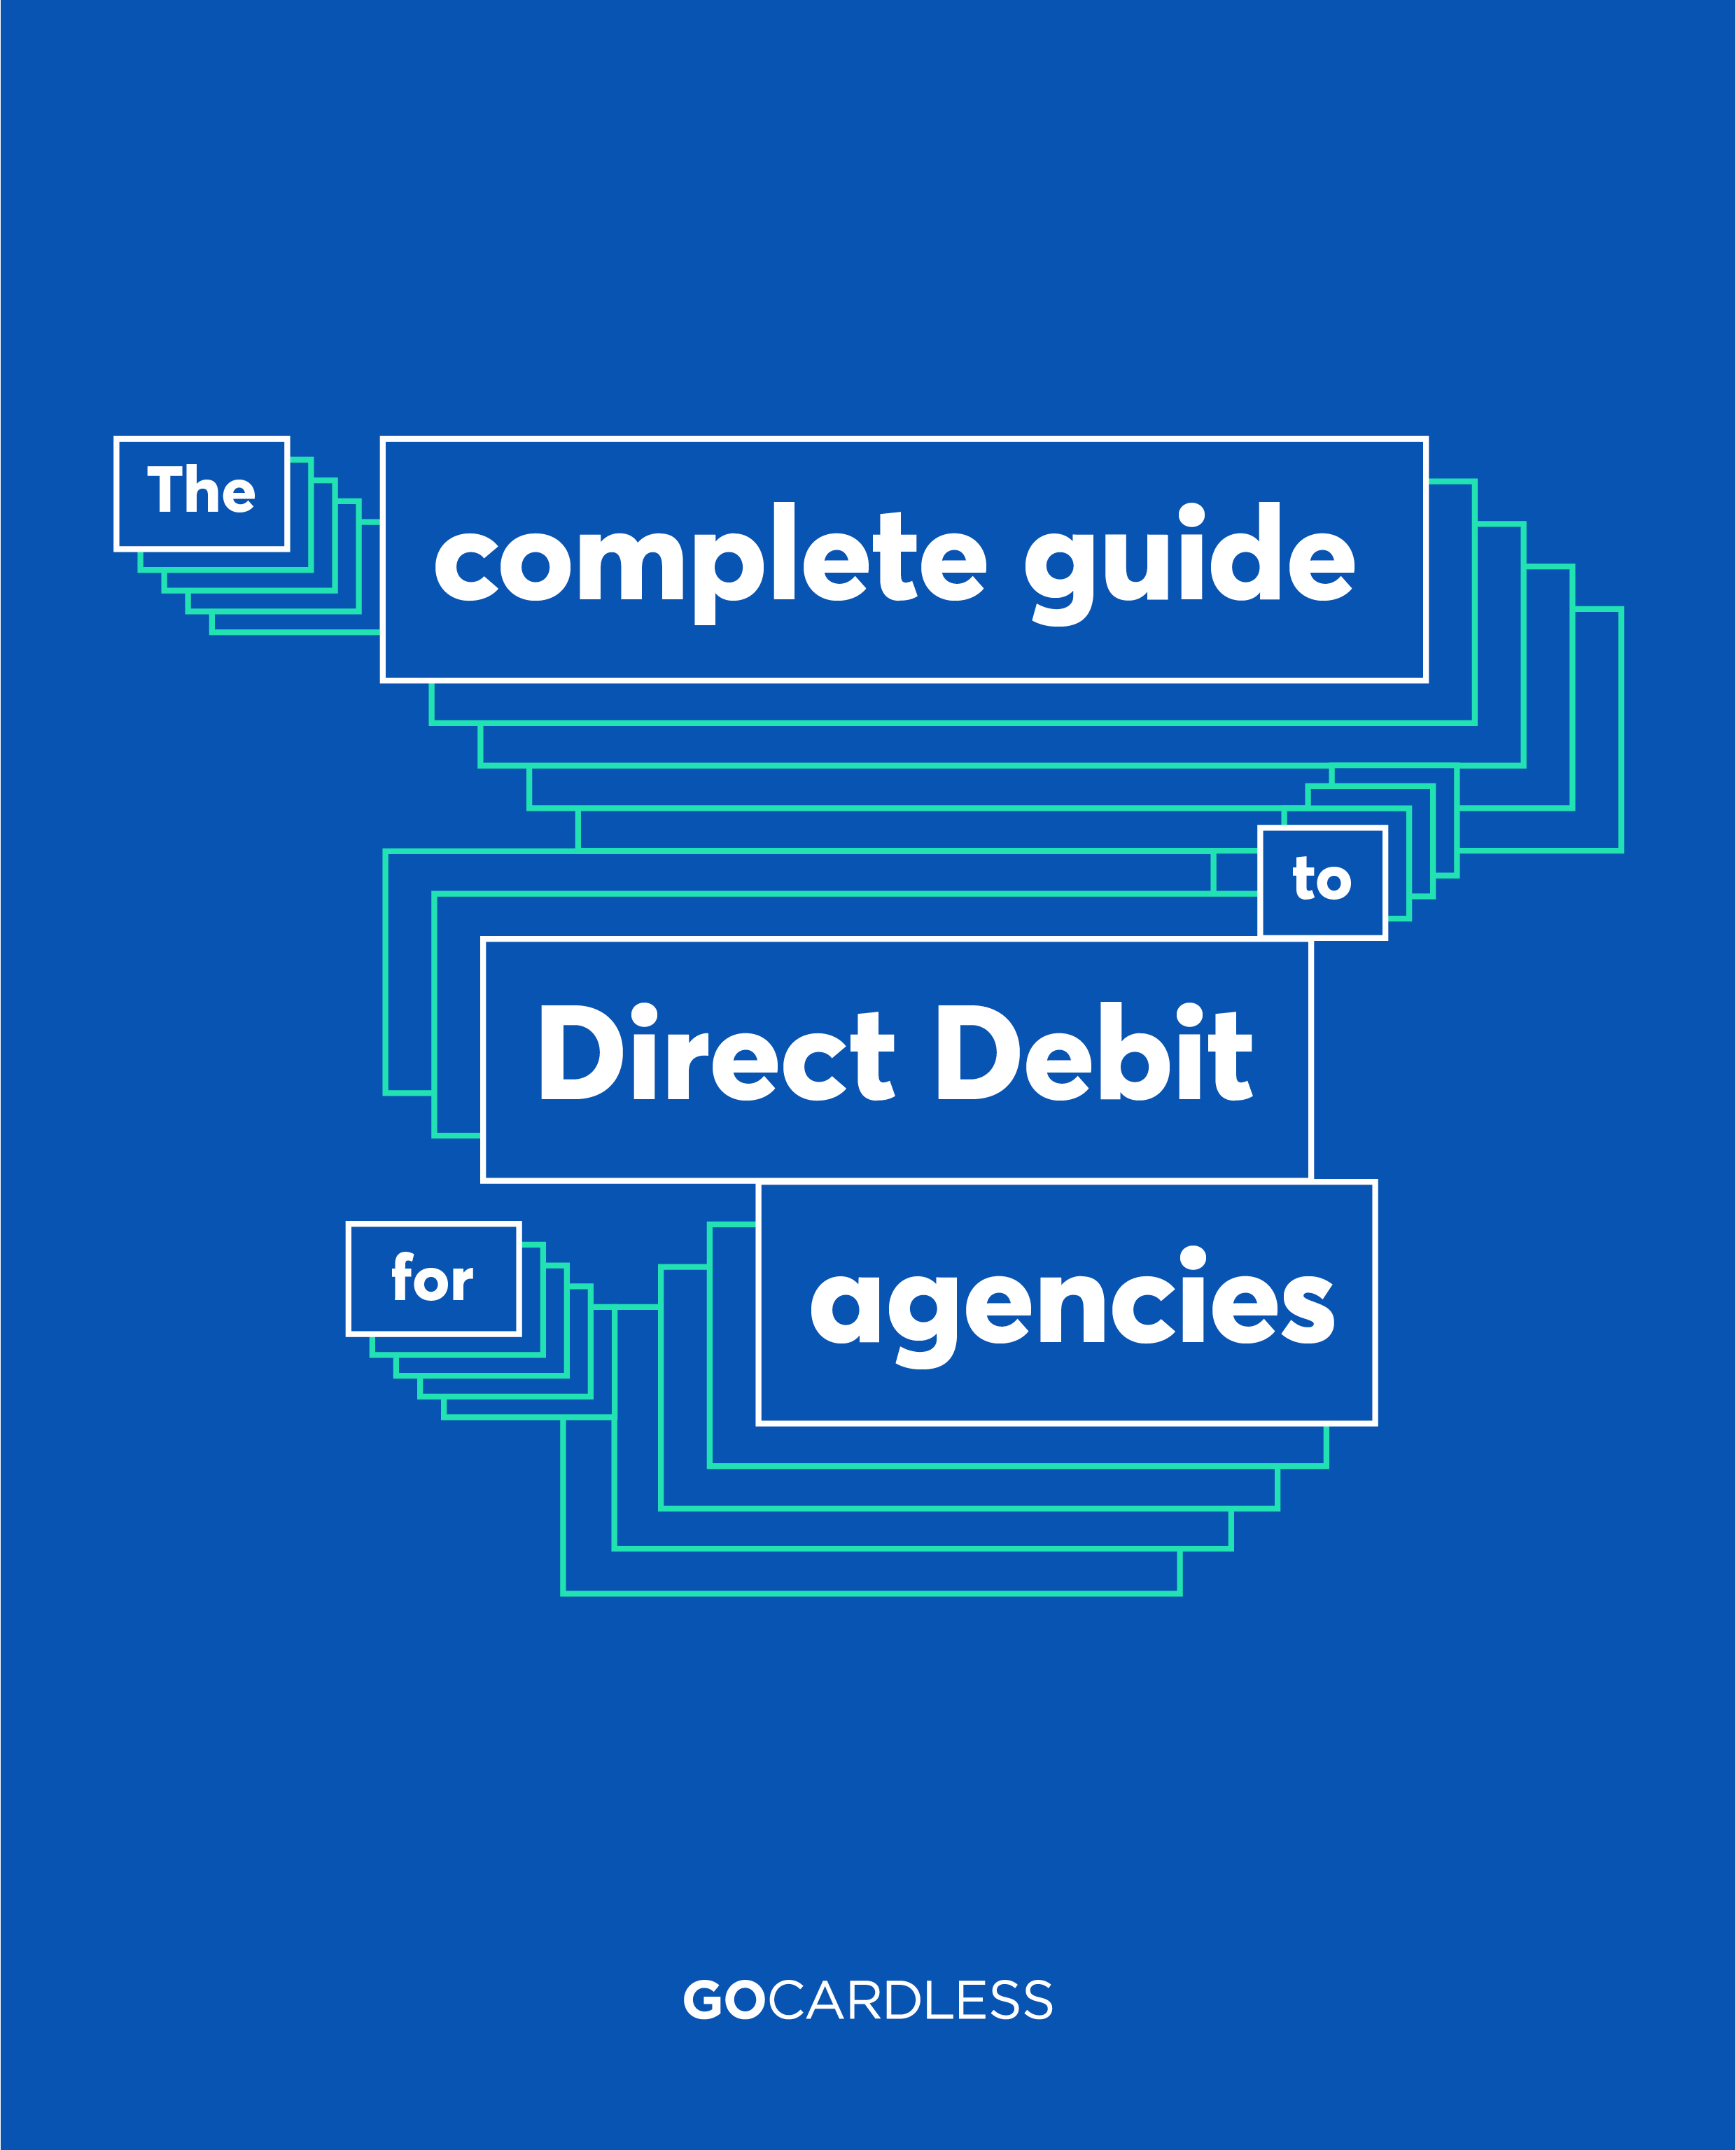 Complete guide to Direct Debit for agencies